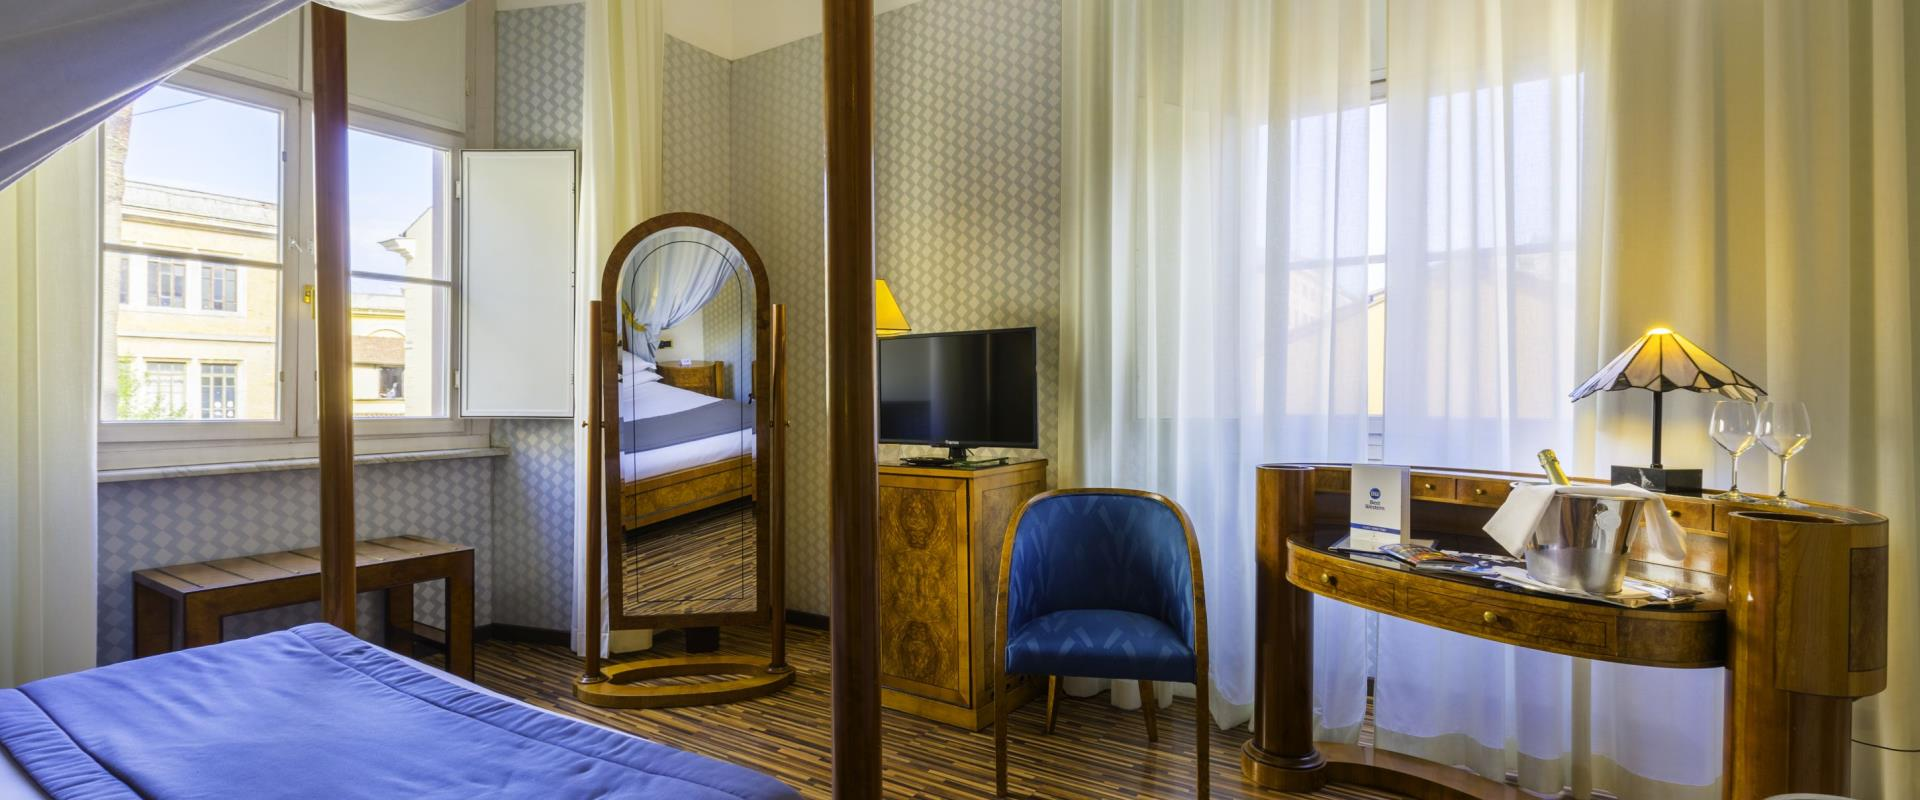 COMFORT Room Best Western Hotel Artdeco Rome Hote 4 star in Rome